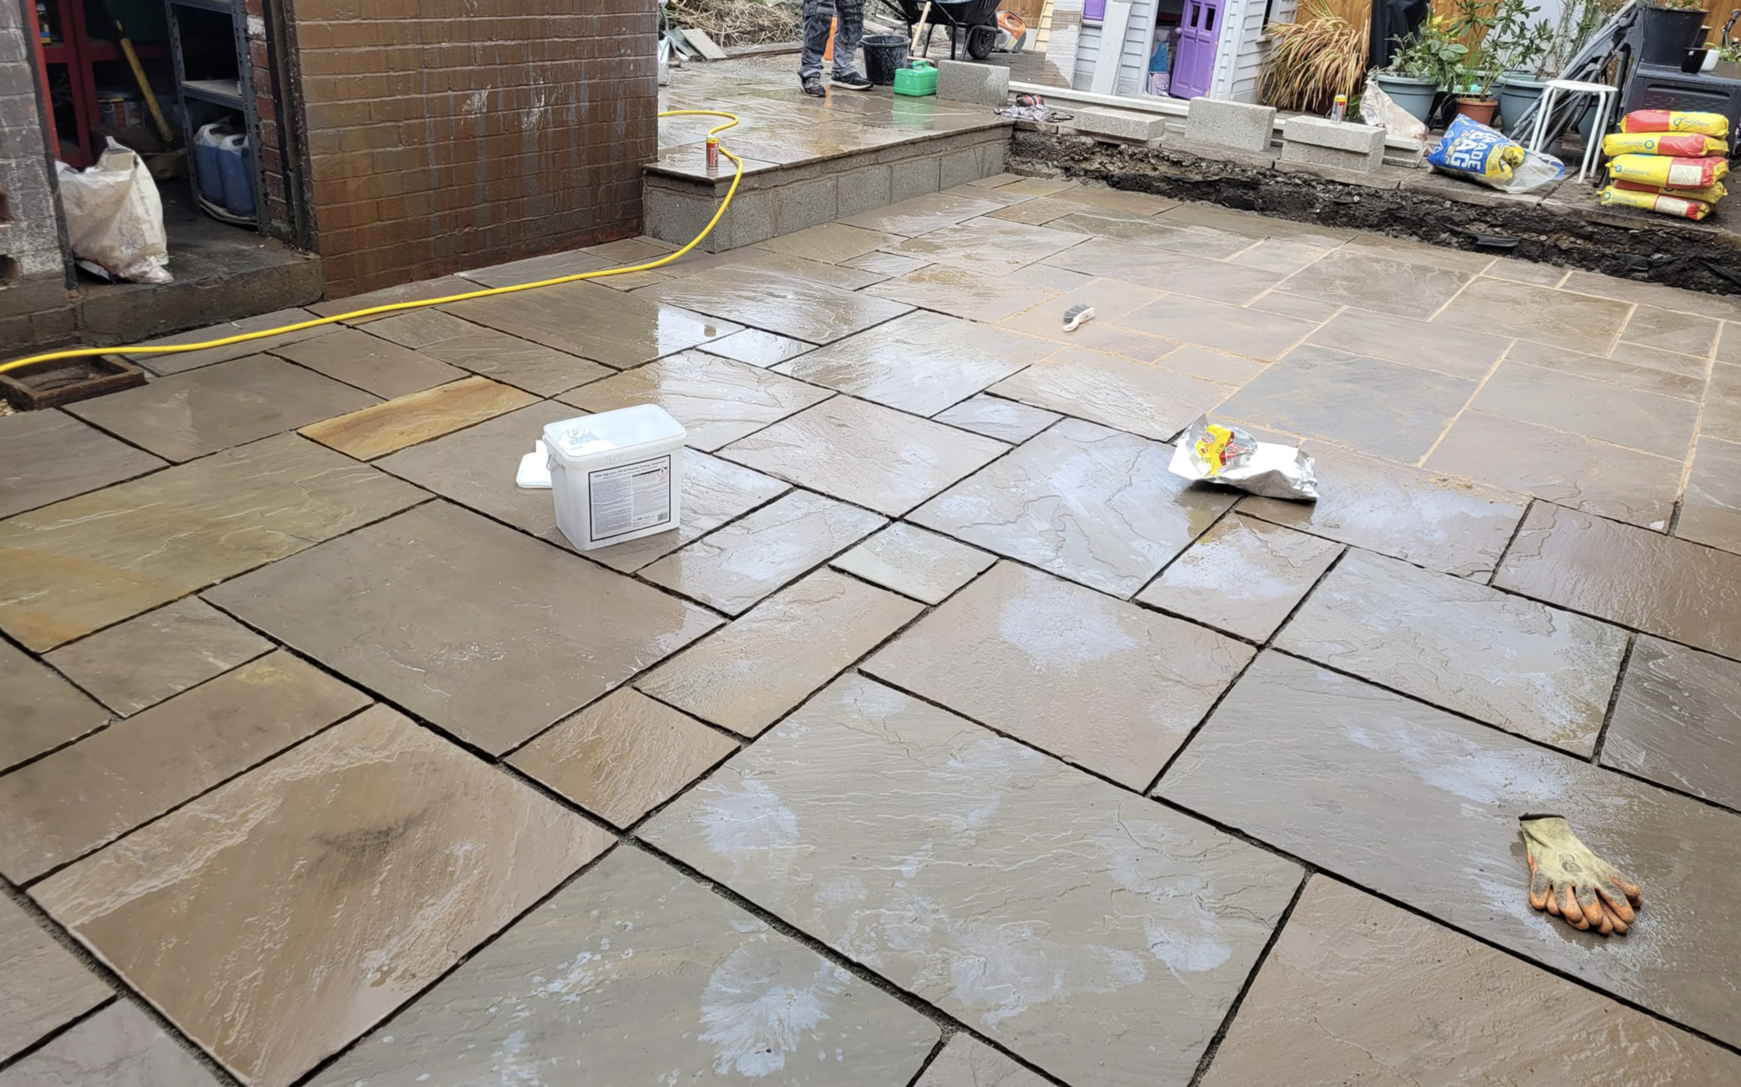 this image shows stained patios in Aliso Viejo, California